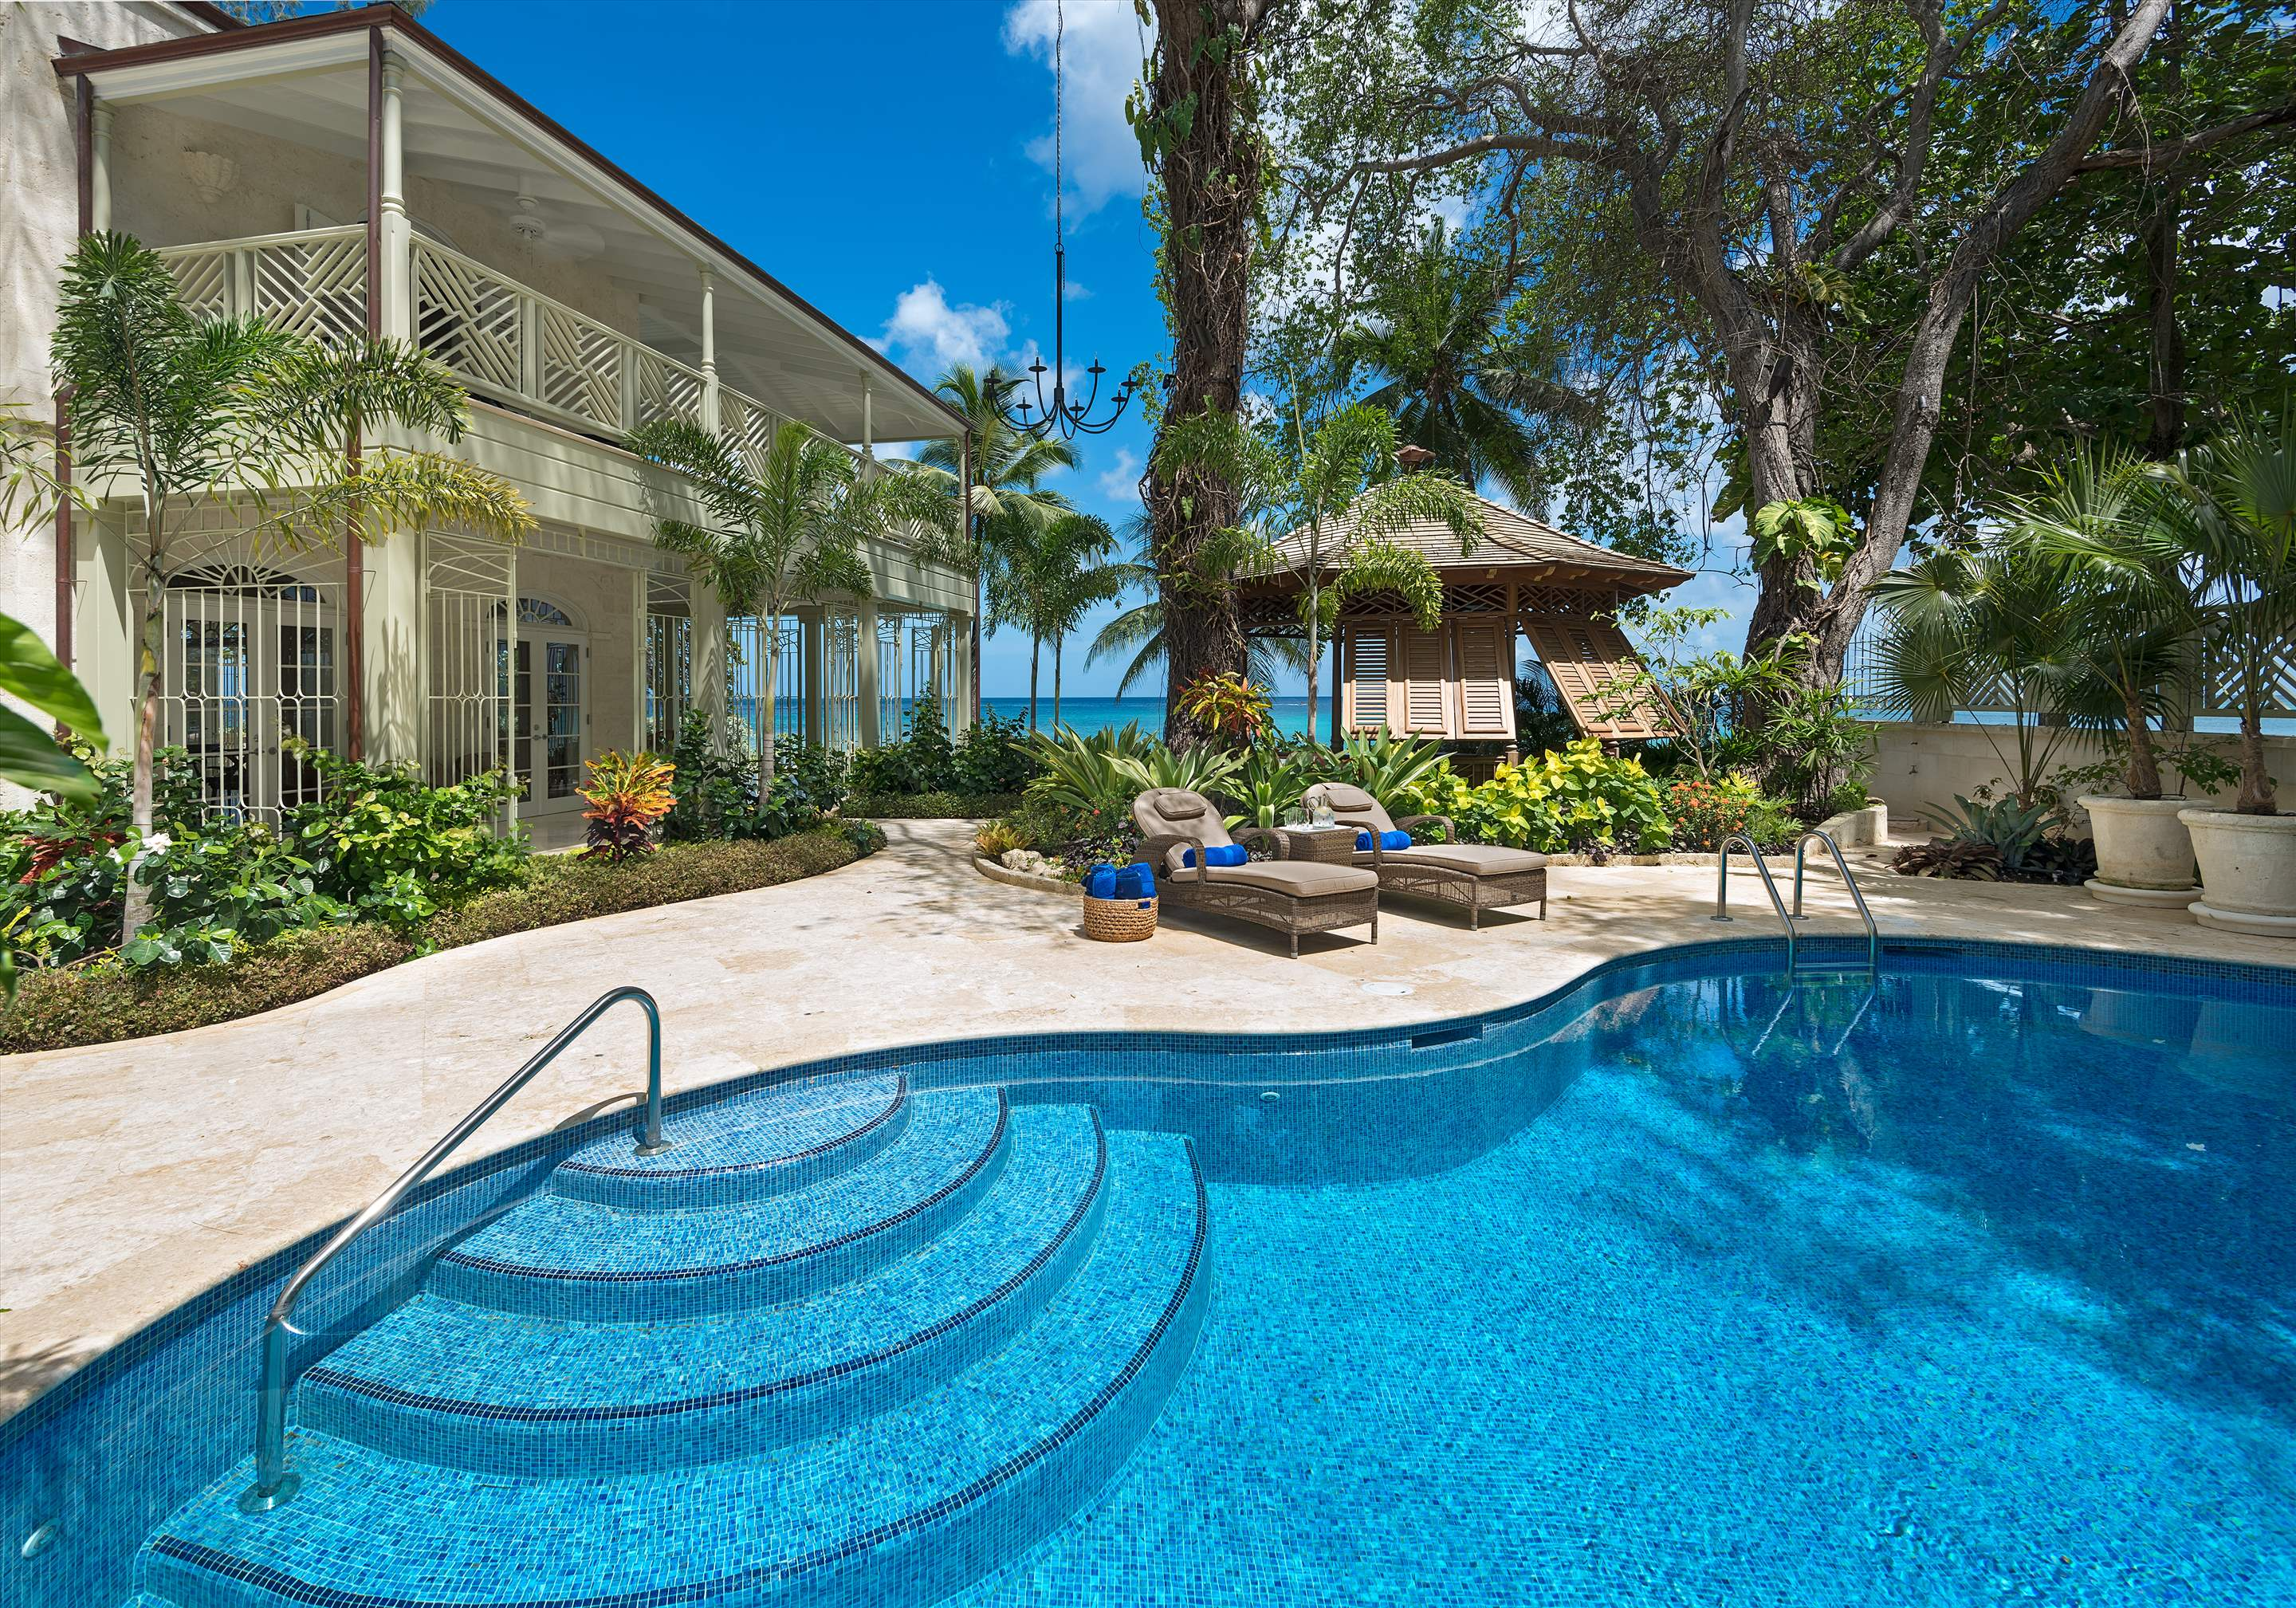 Hemingway House, St Peter, 4 bedroom villa in St. James & West Coast, Barbados